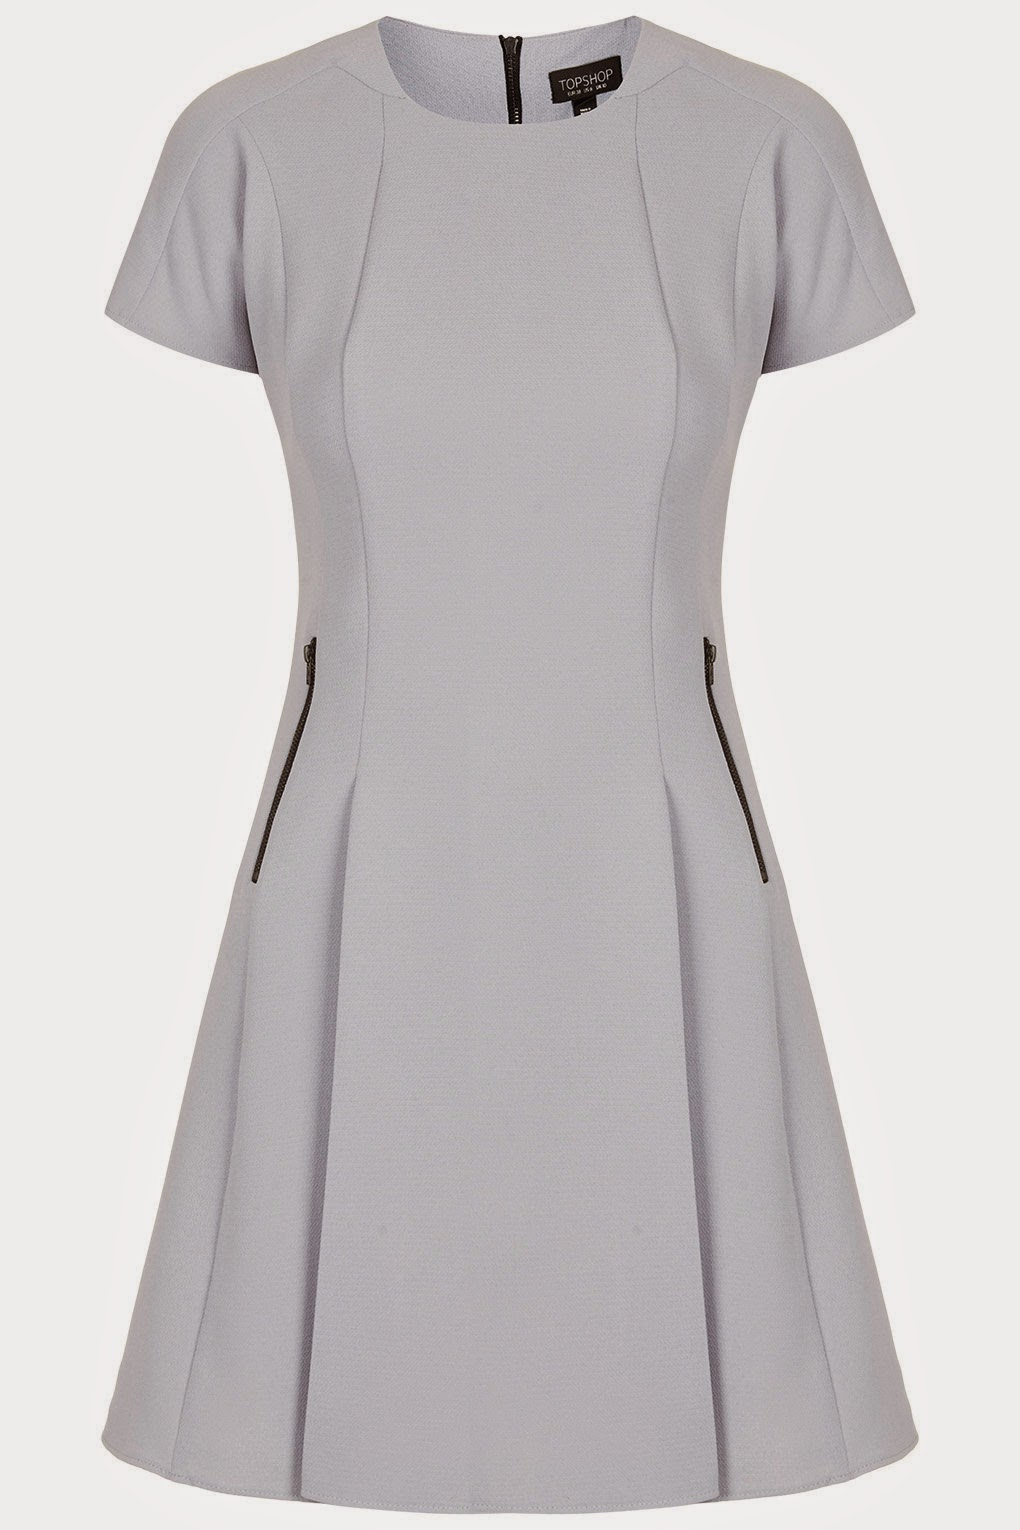 grey zip topshop dress, zip topshop dress,